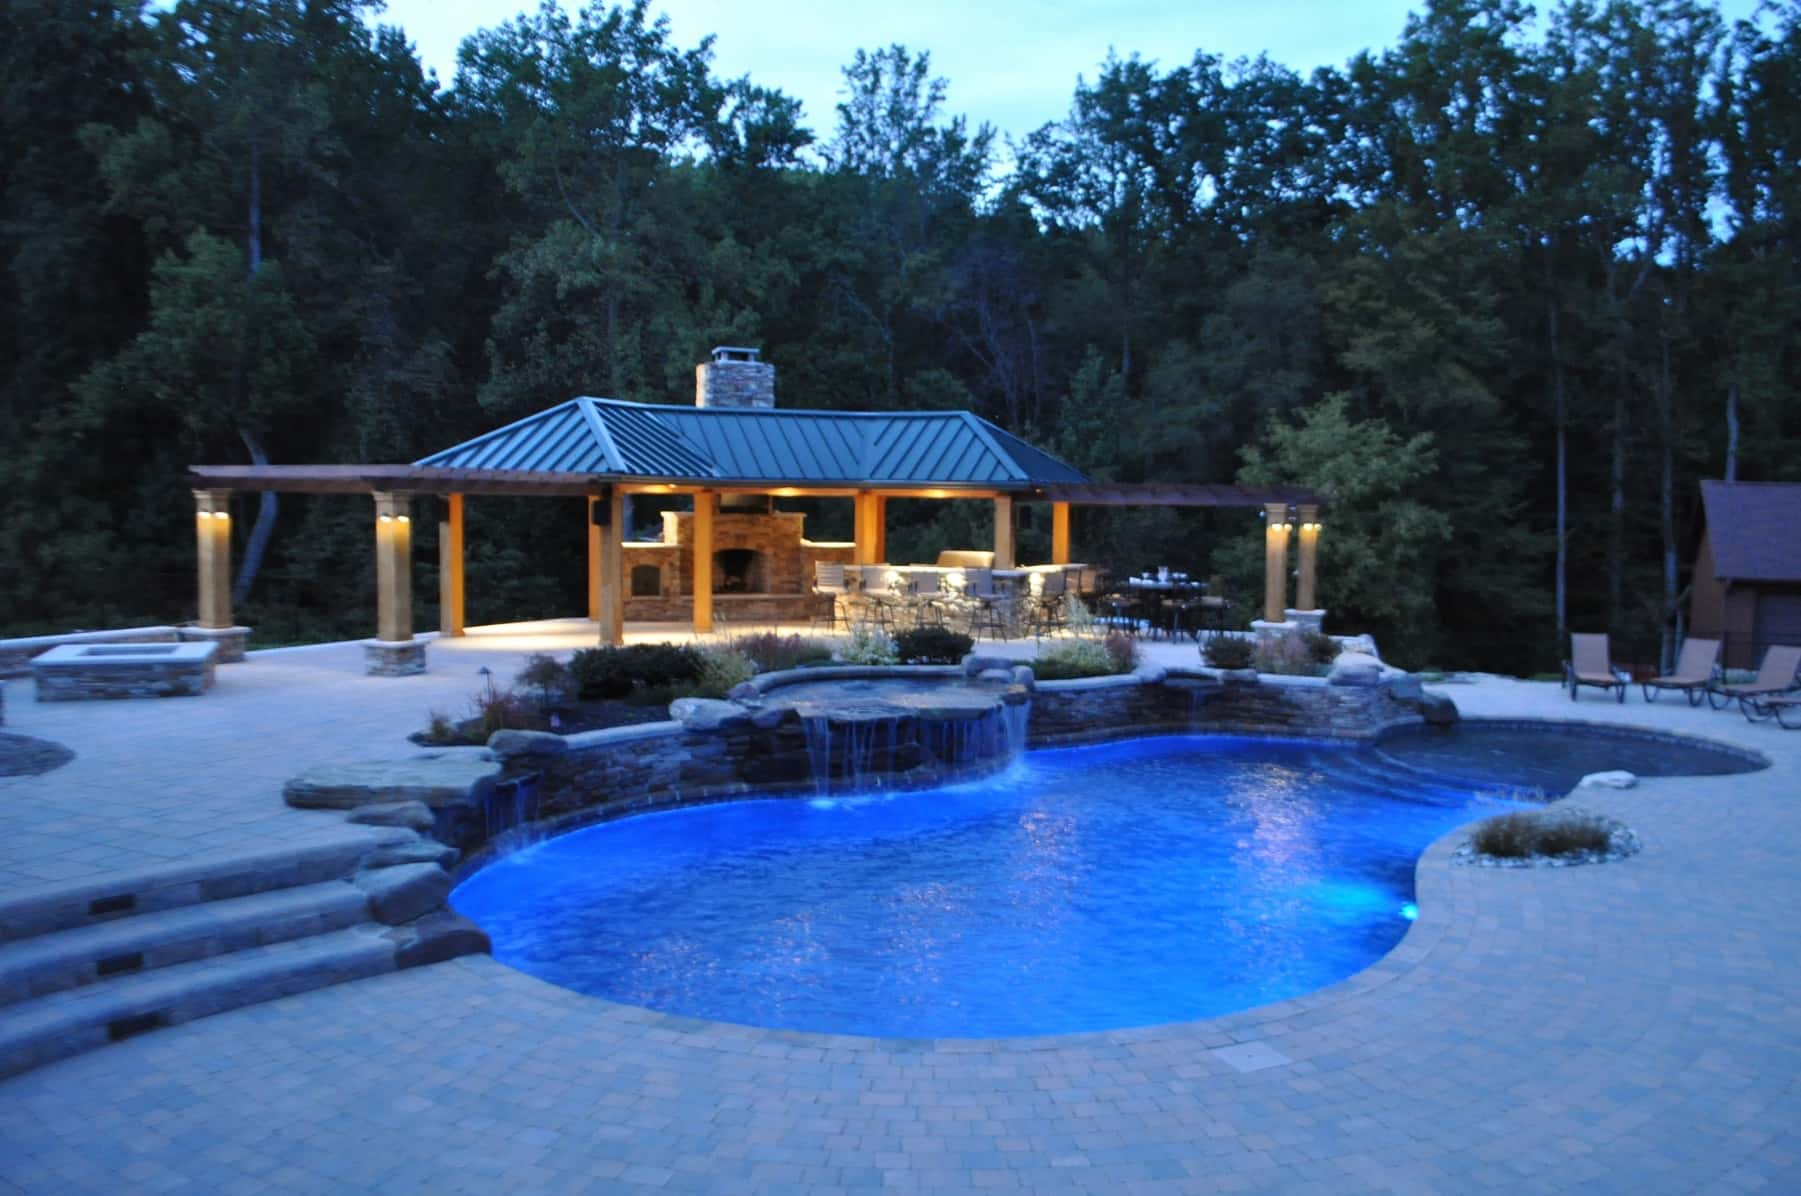 Freeform Pool Landscape Lighting Washington DC